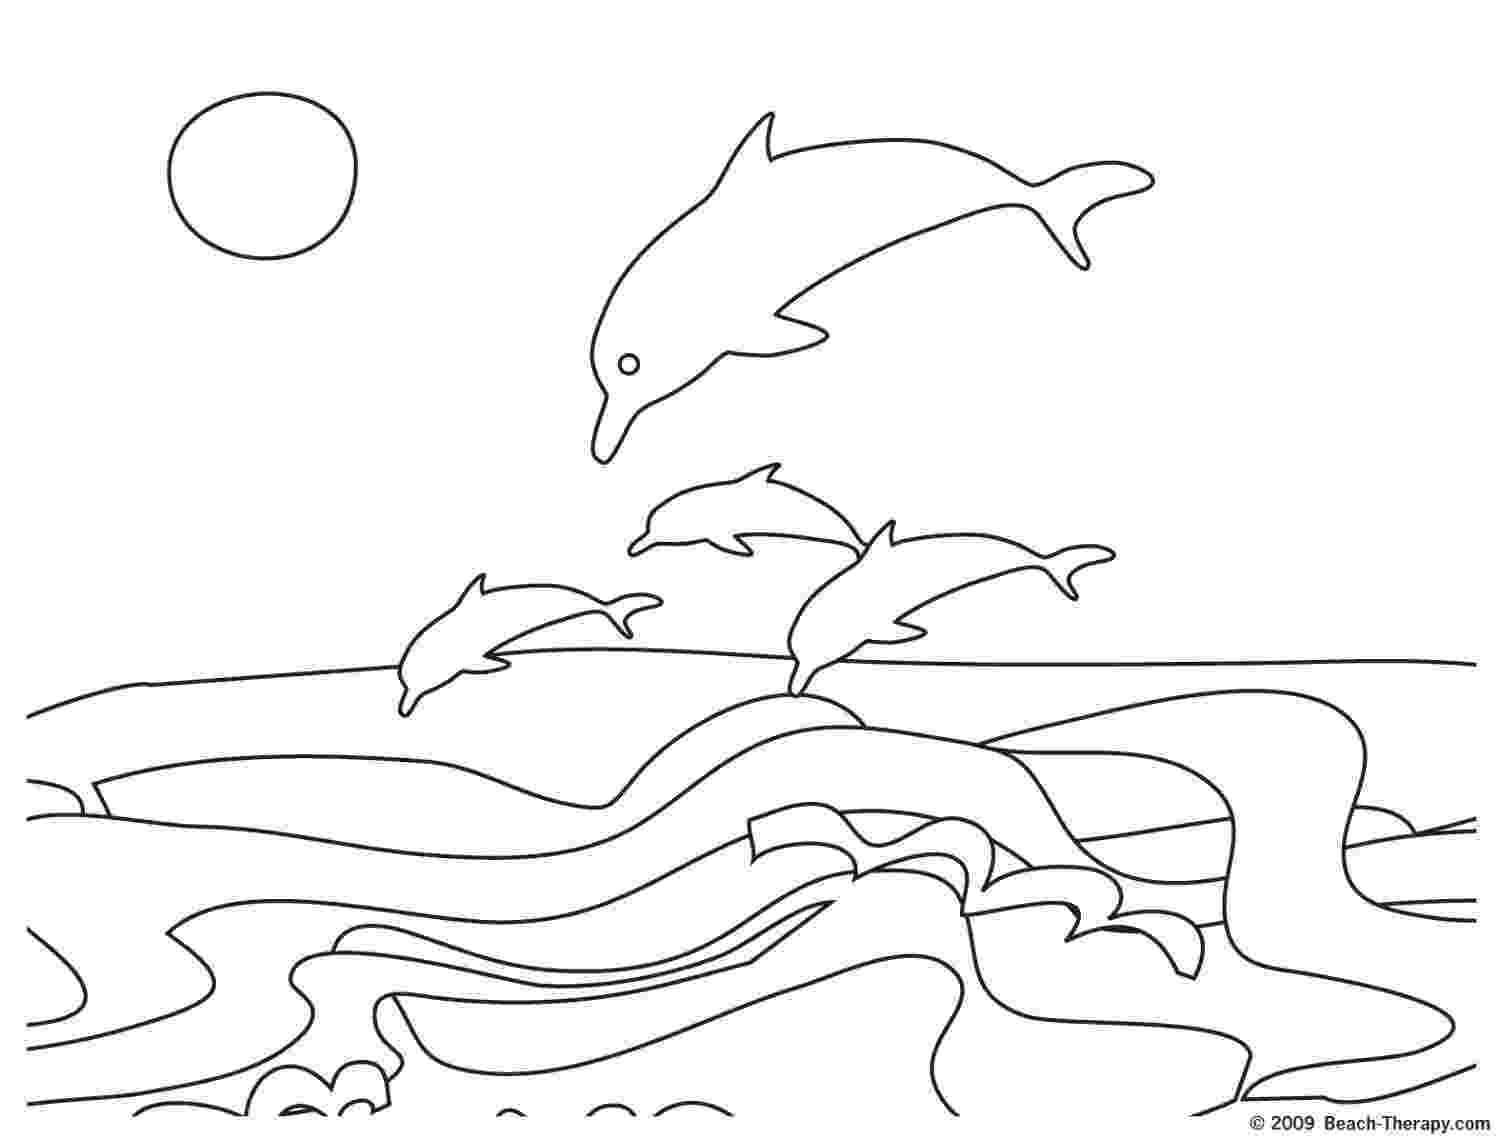 dolphin images for coloring free printable dolphin coloring pages for kids cool2bkids dolphin images coloring for